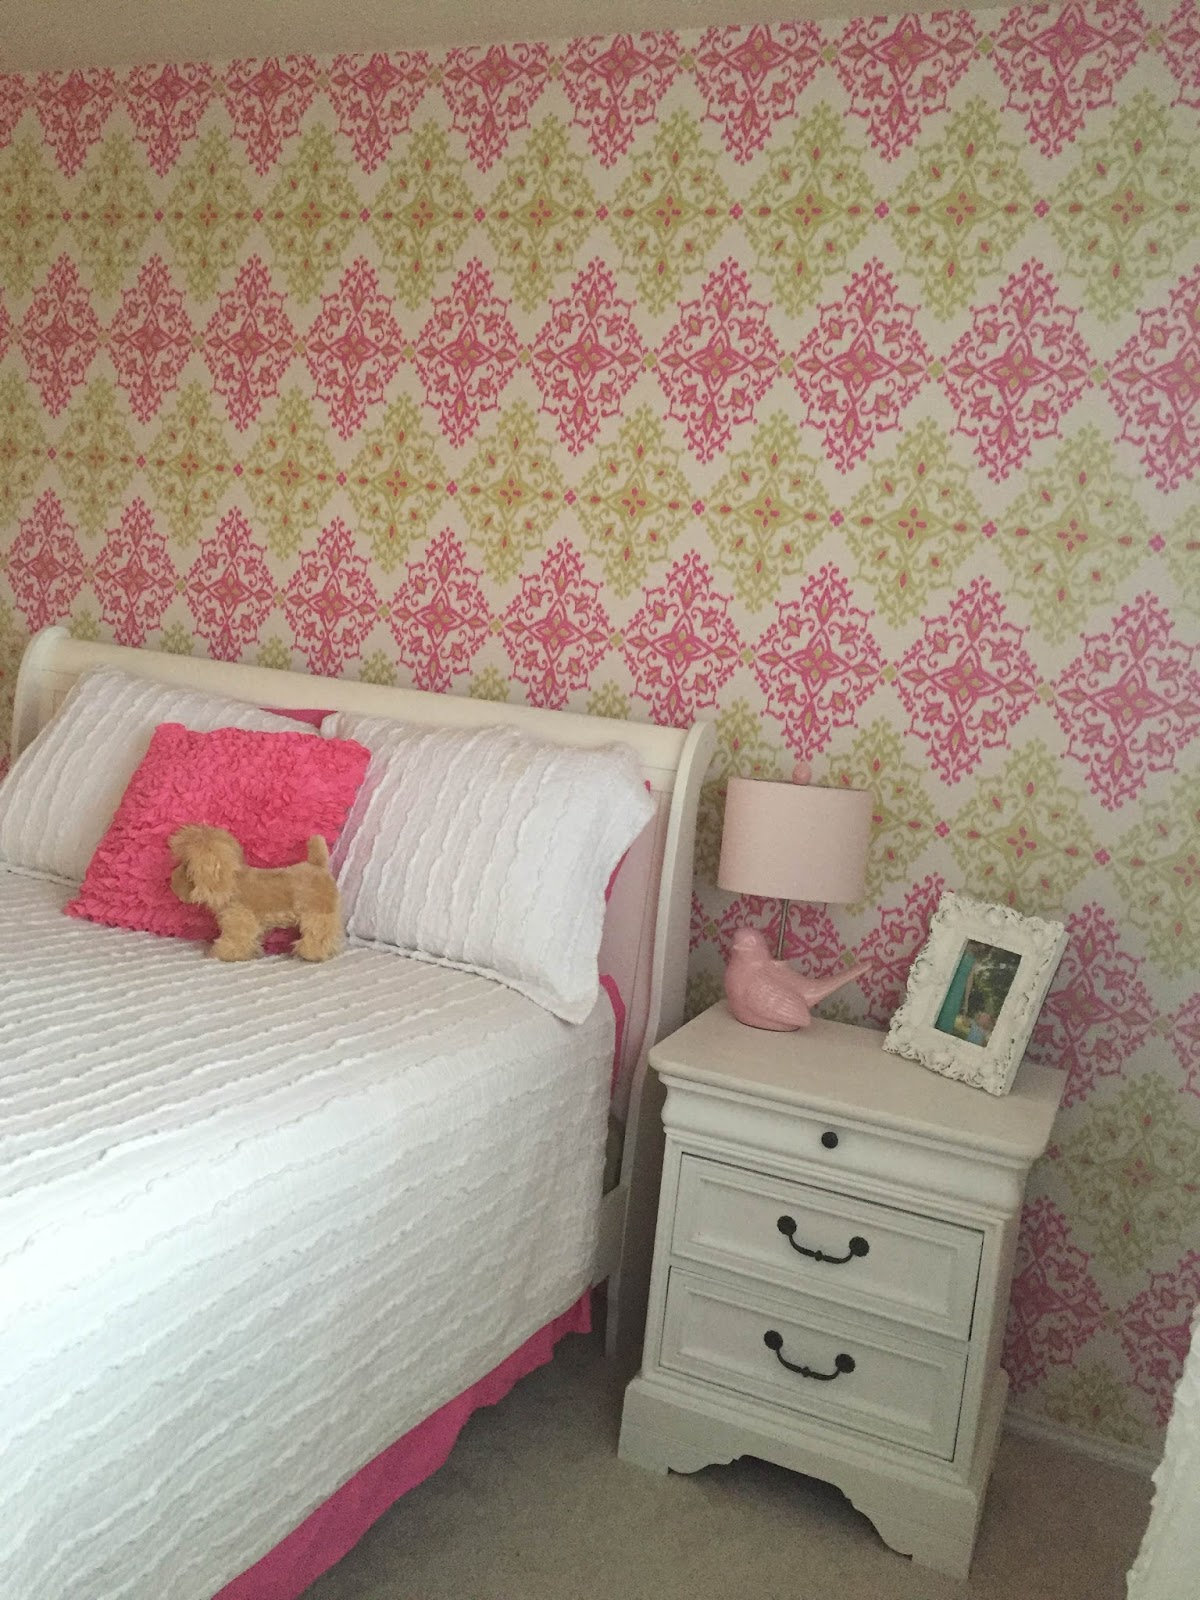 Amazing Bed Craigslist Dresser Craiglist painted in Annie Sloan Pure white by me Pink Bird Lamp Home Goods Curtains Target Sewed pink pom pom from Hobby